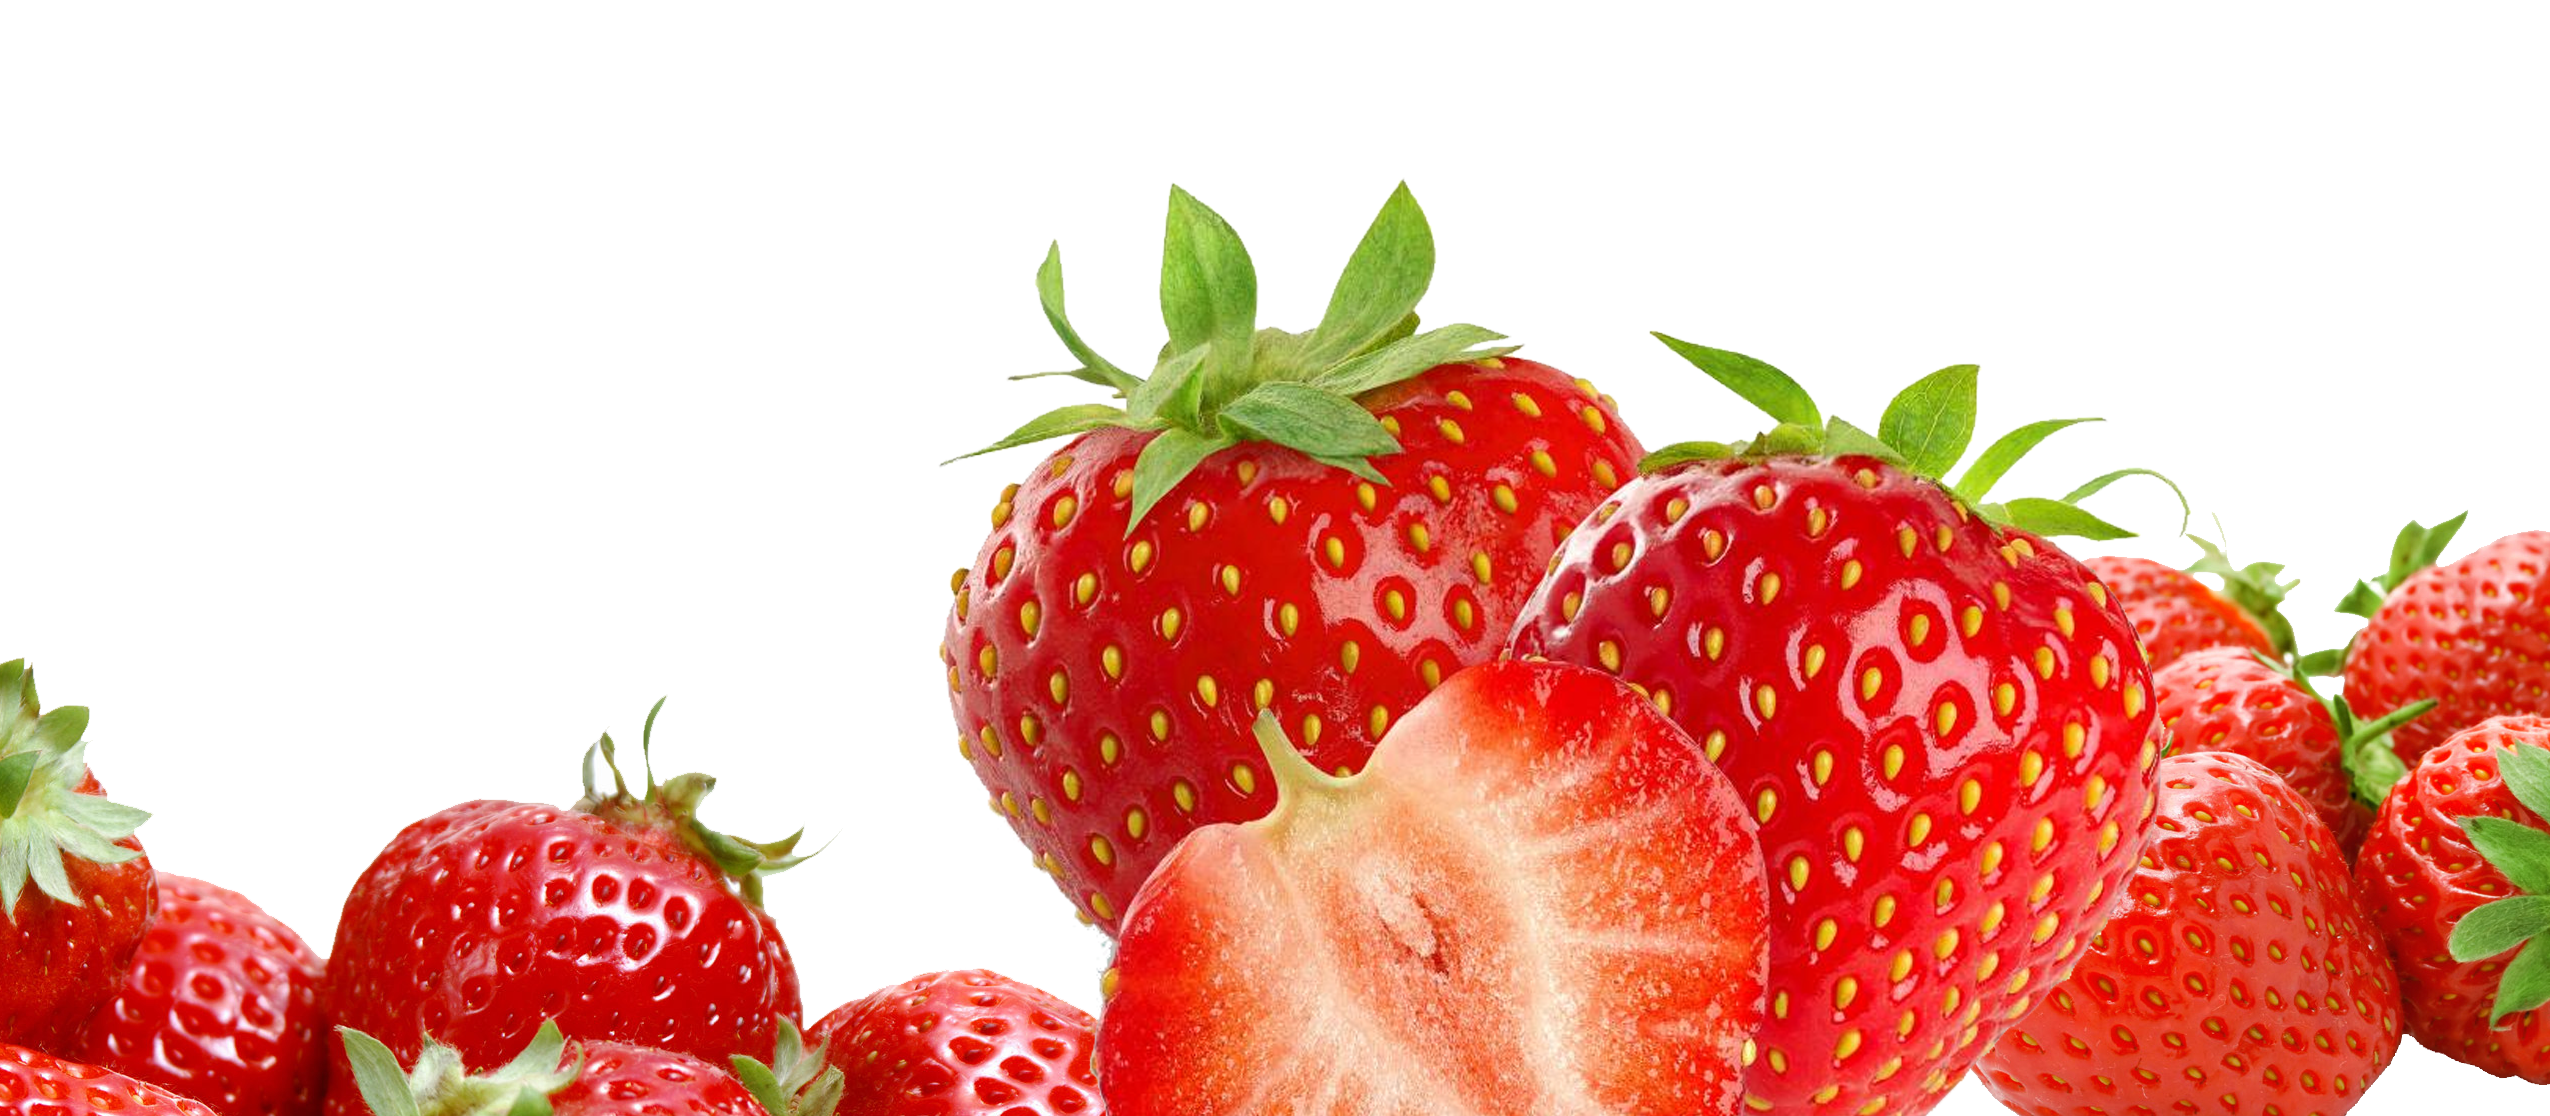 Strawberry Png image #22936 - Strawberry PNG